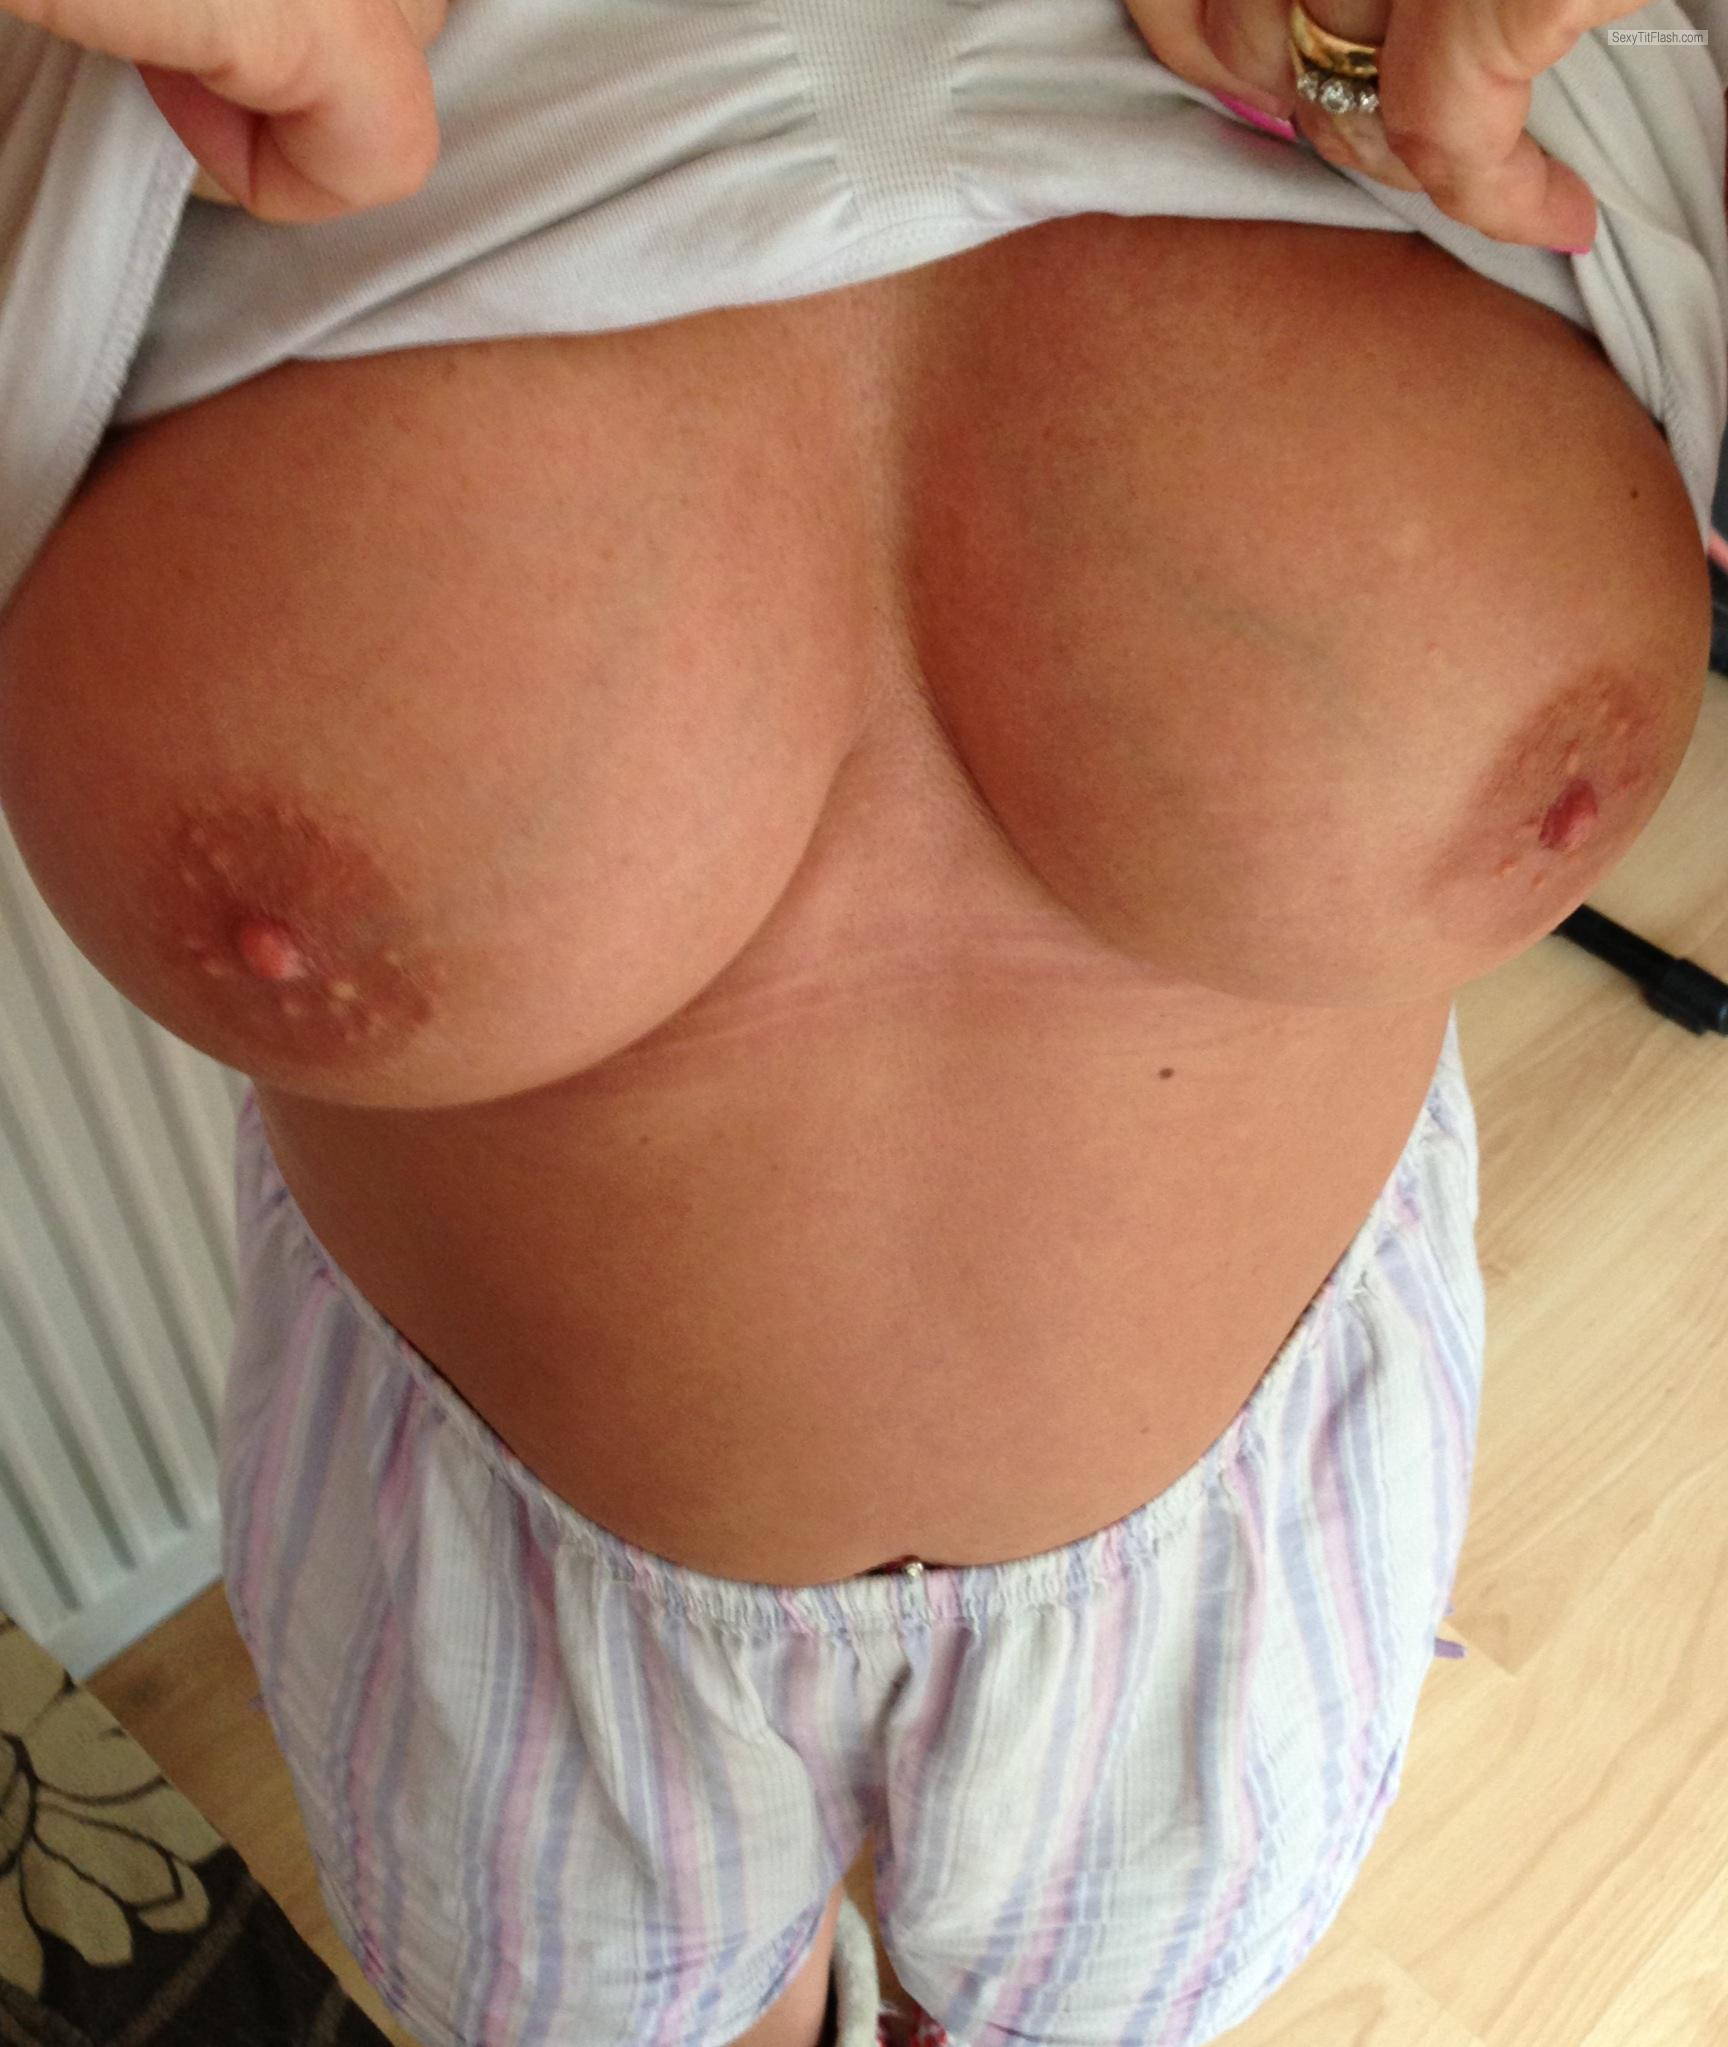 Tit Flash: Wife's Big Tits - Elizabeth from United Kingdom